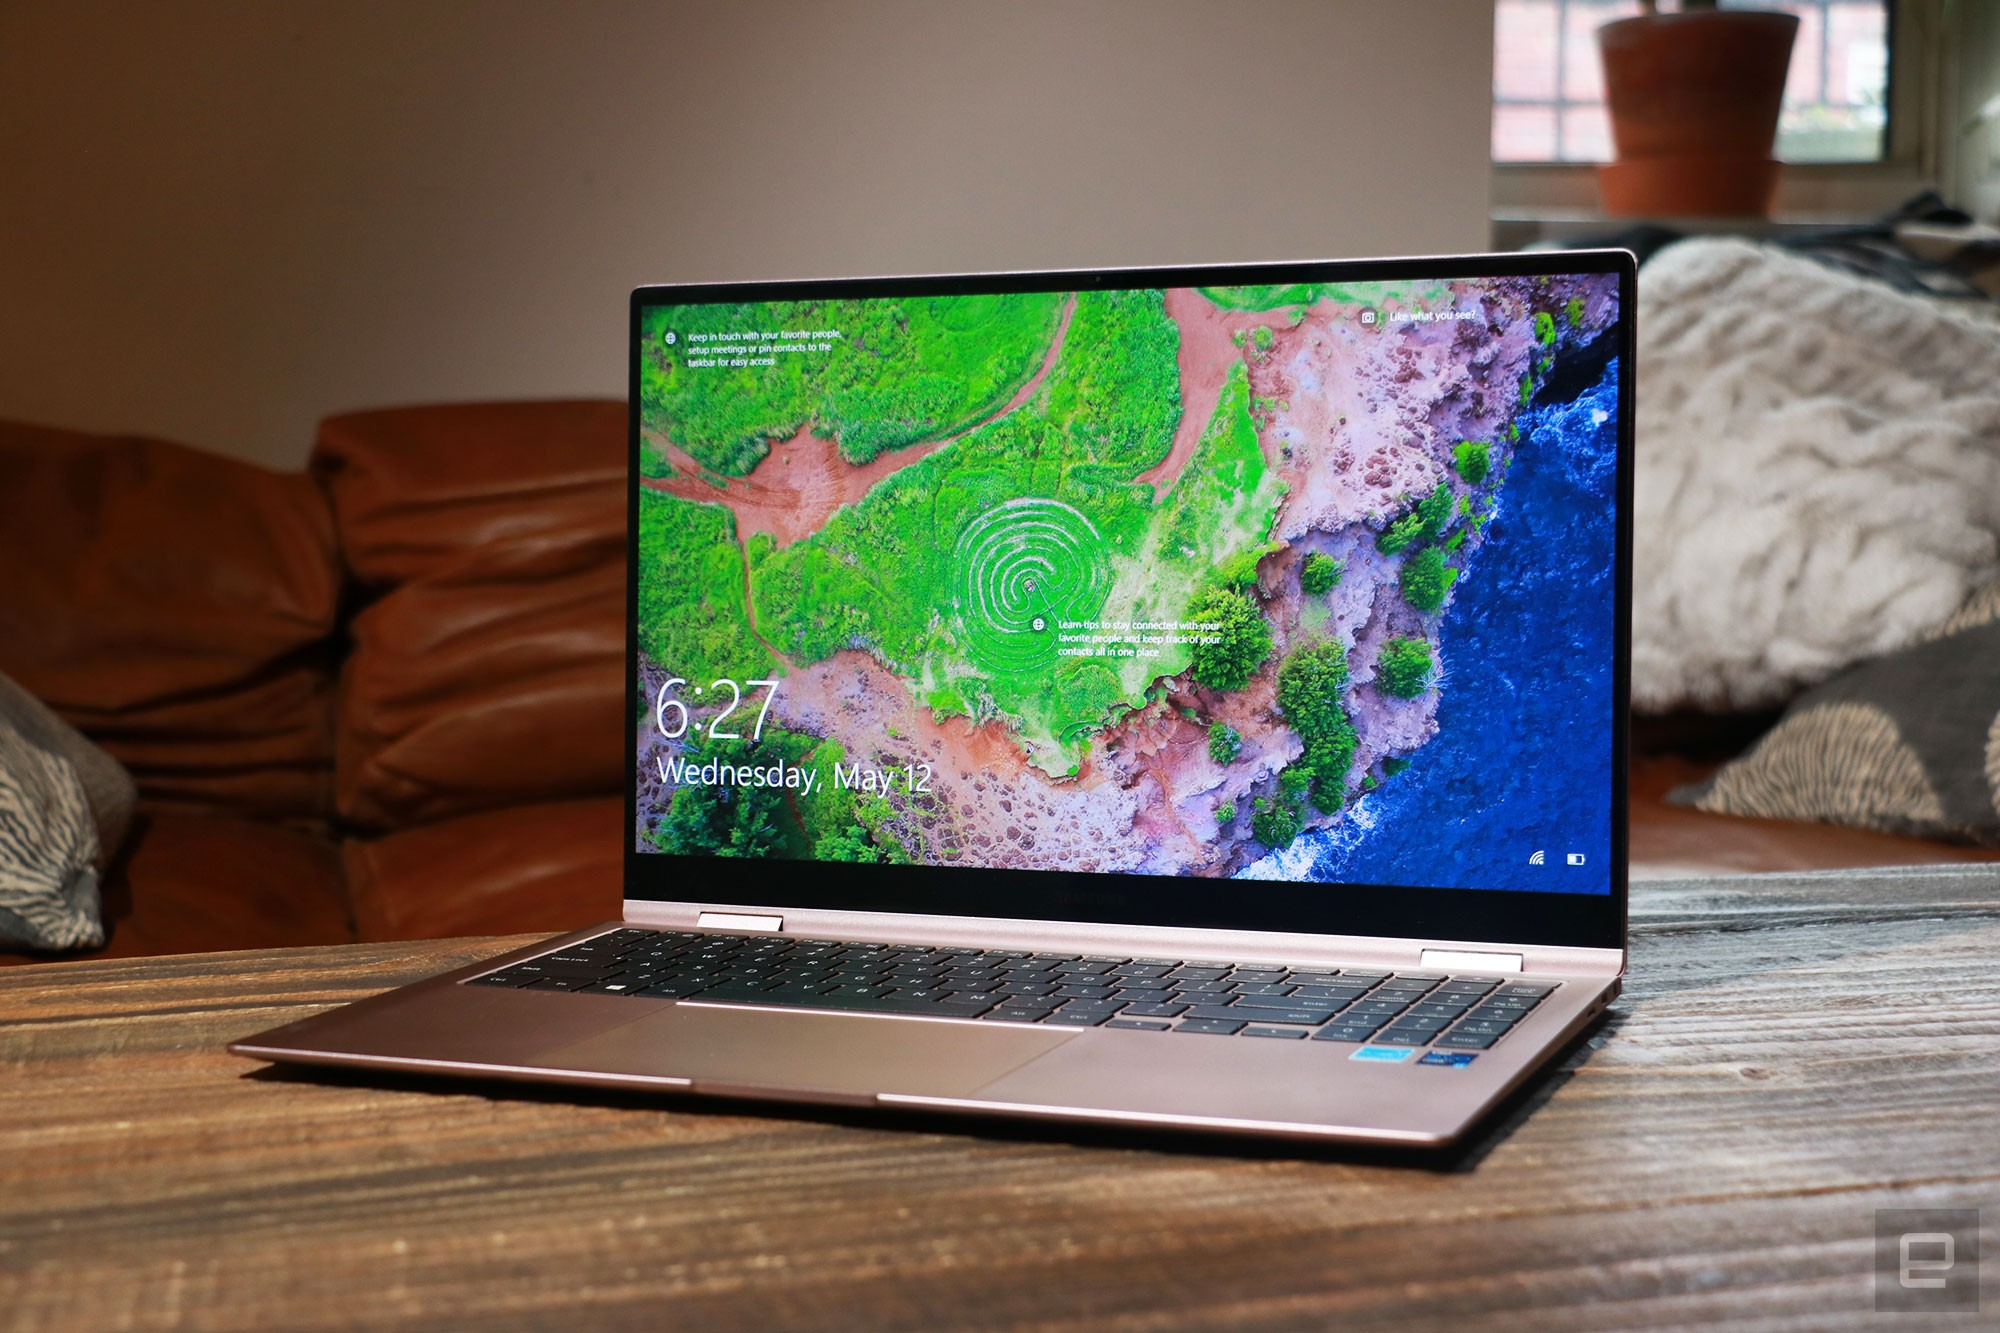 <p>Samsung Galaxy Book Pro 360 review pictures. Off-angle front view of the 15-inch Galaxy Book Pro 360 on a table in front of a brown couch.</p>